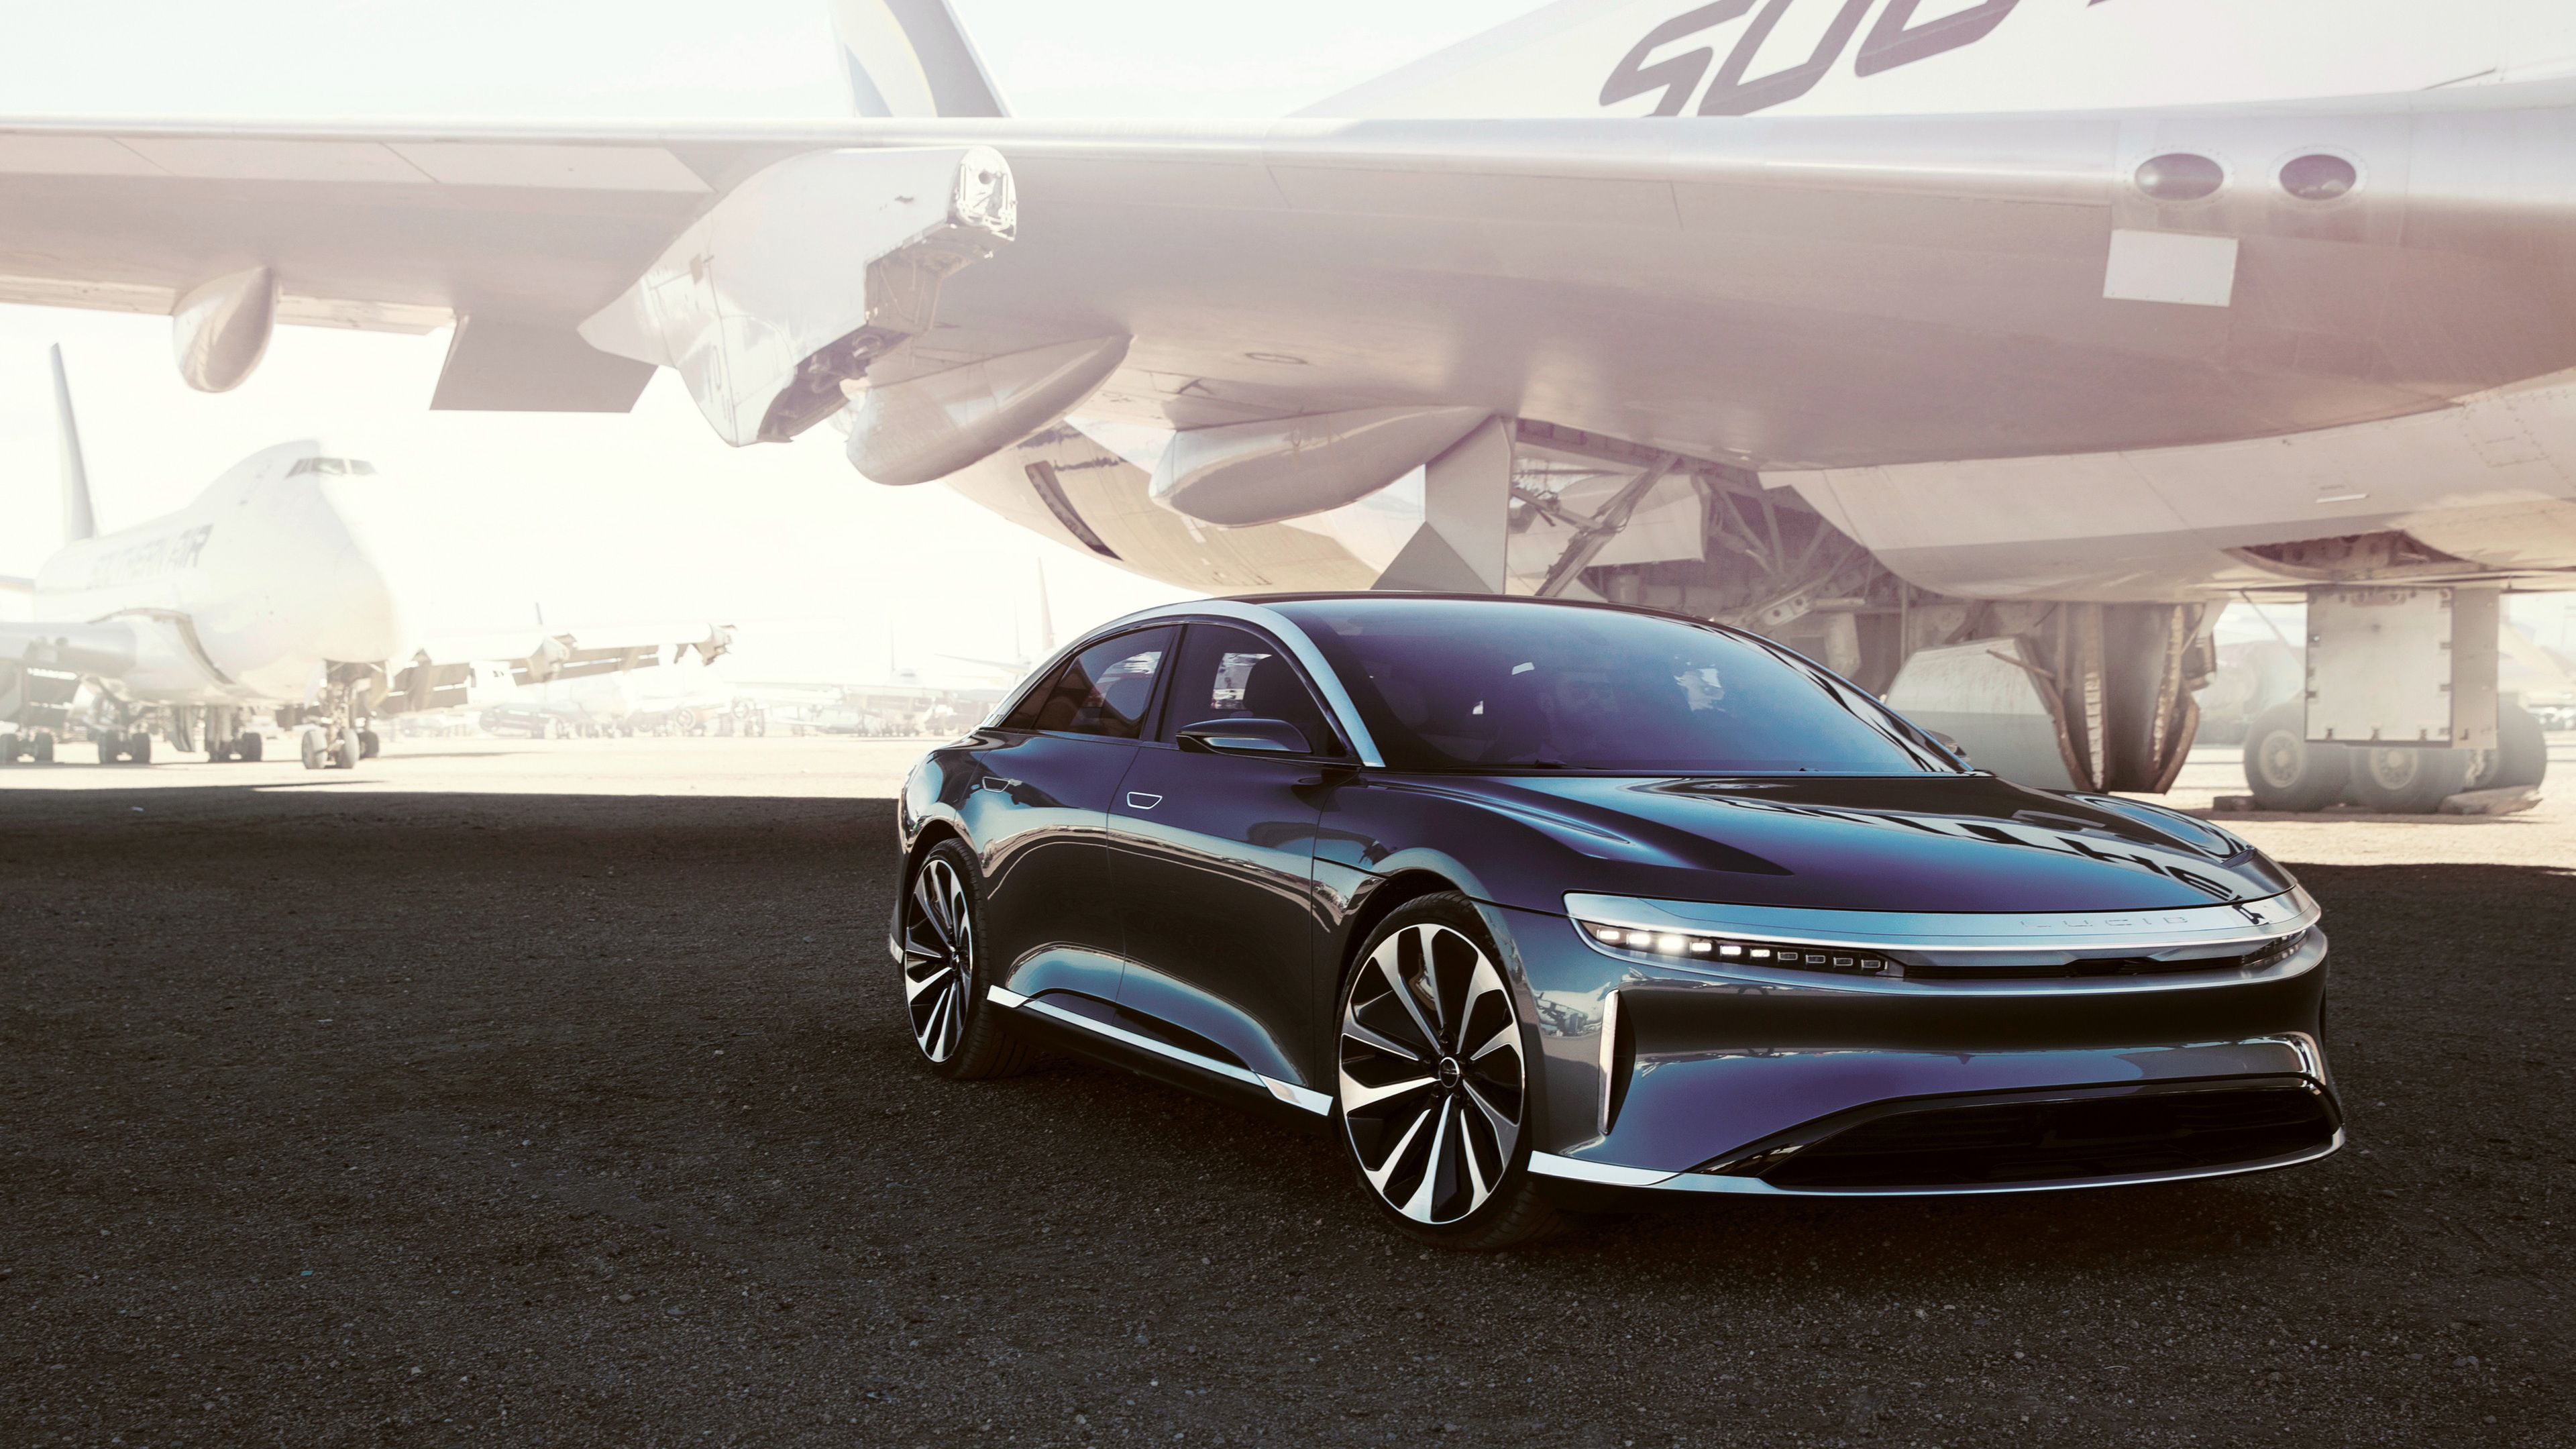 Lucid Air Launch Edition Prototype 4k Wallpaper Lucid Air Wallpapers Hd Wallpapers Concept Cars Wallpapers Cars Wallpapers 4k Wallpapers Car Sedan Lucid